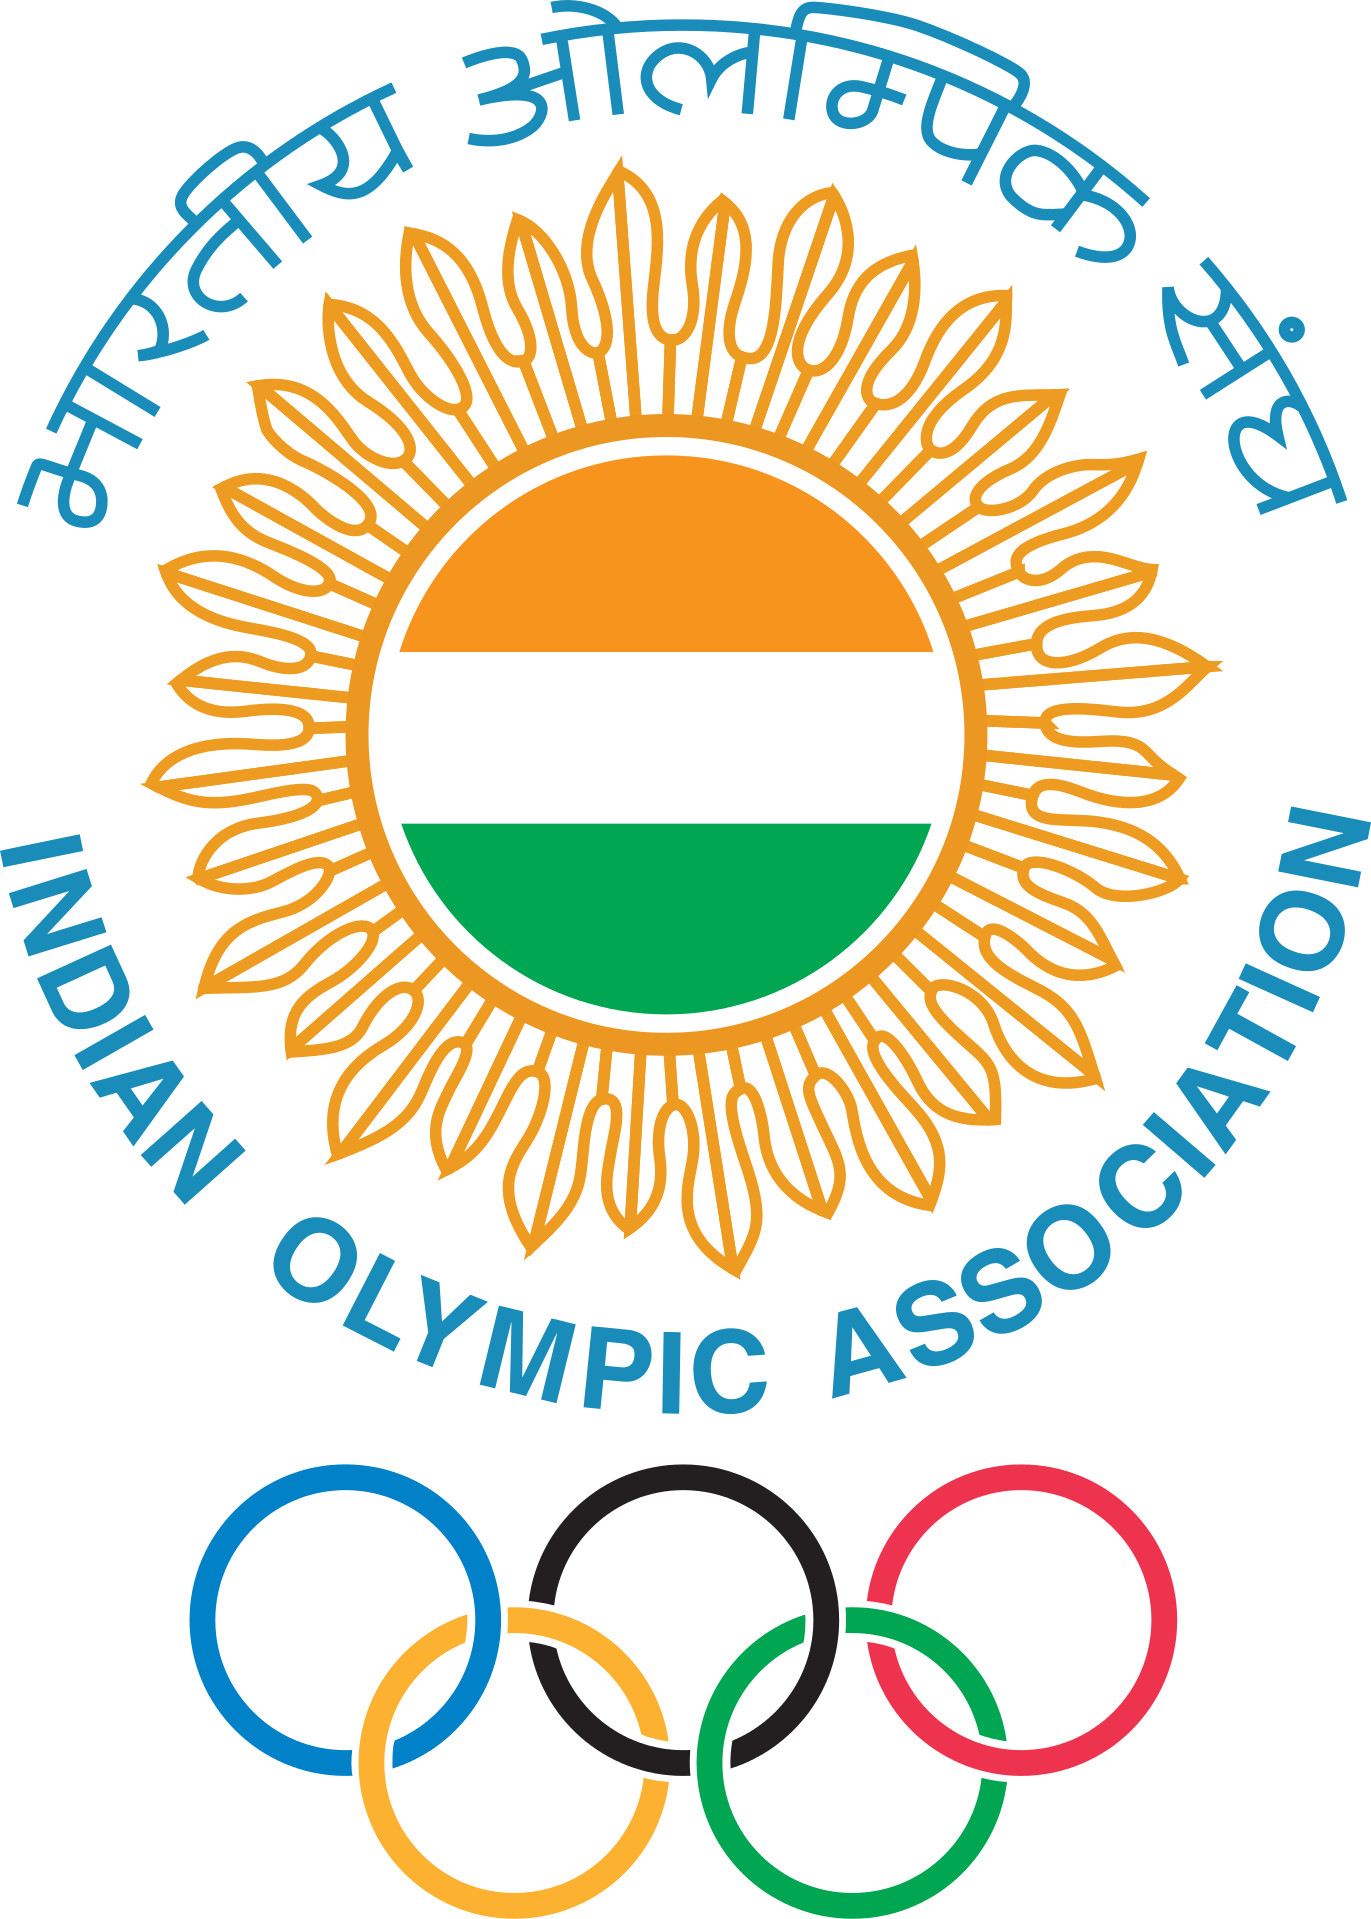 The Indian Olympic Association is the body responsible for